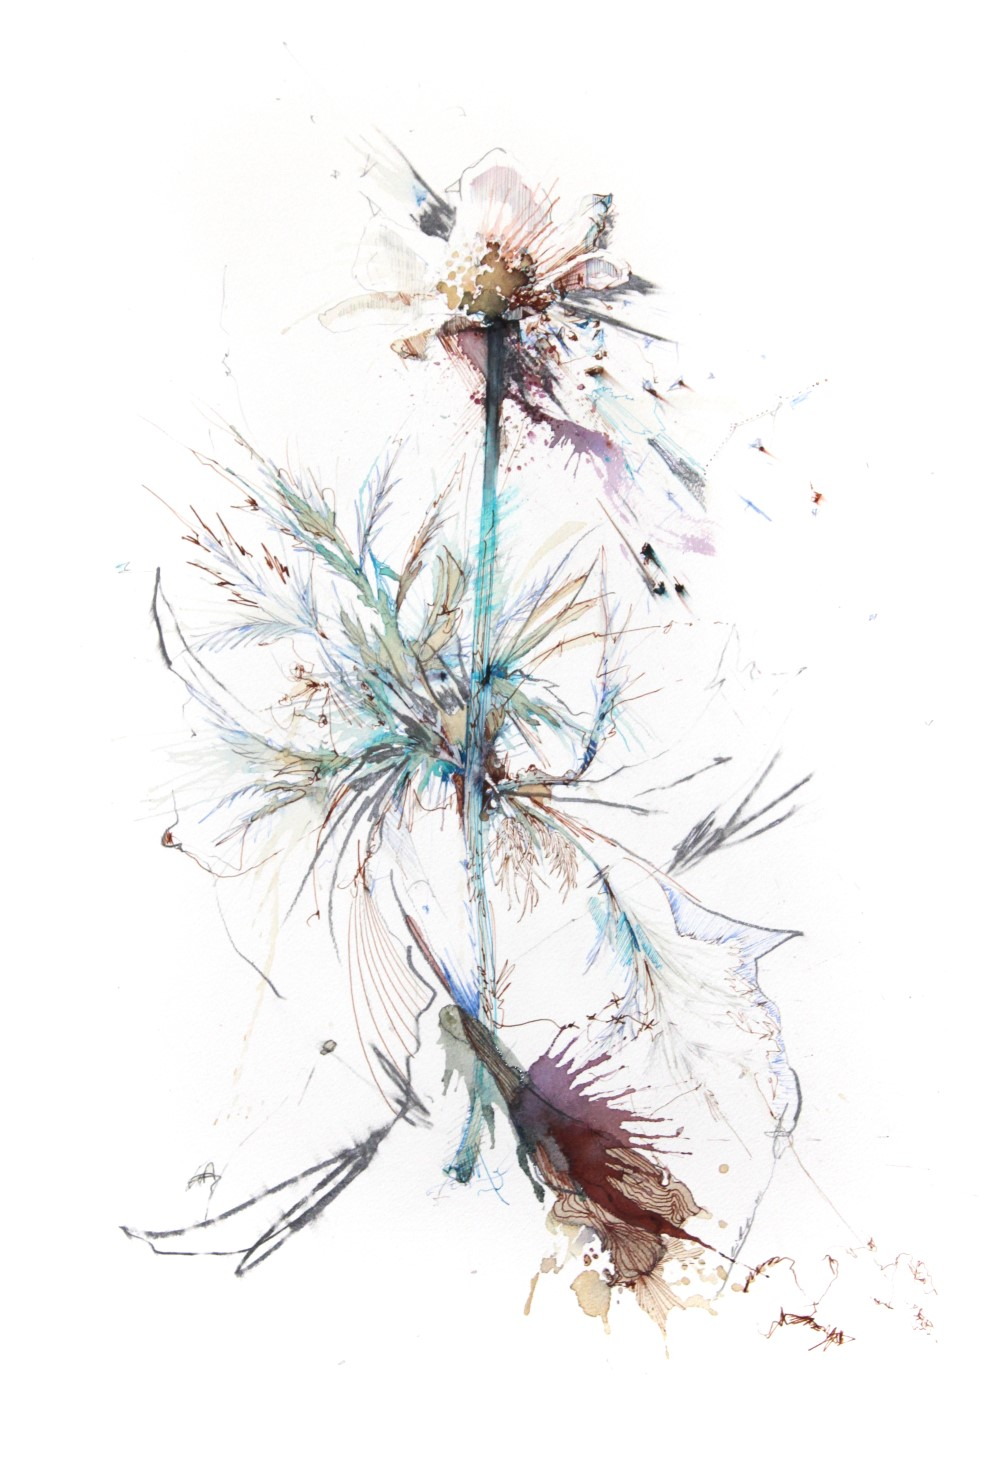 Fatal by Carne Griffiths